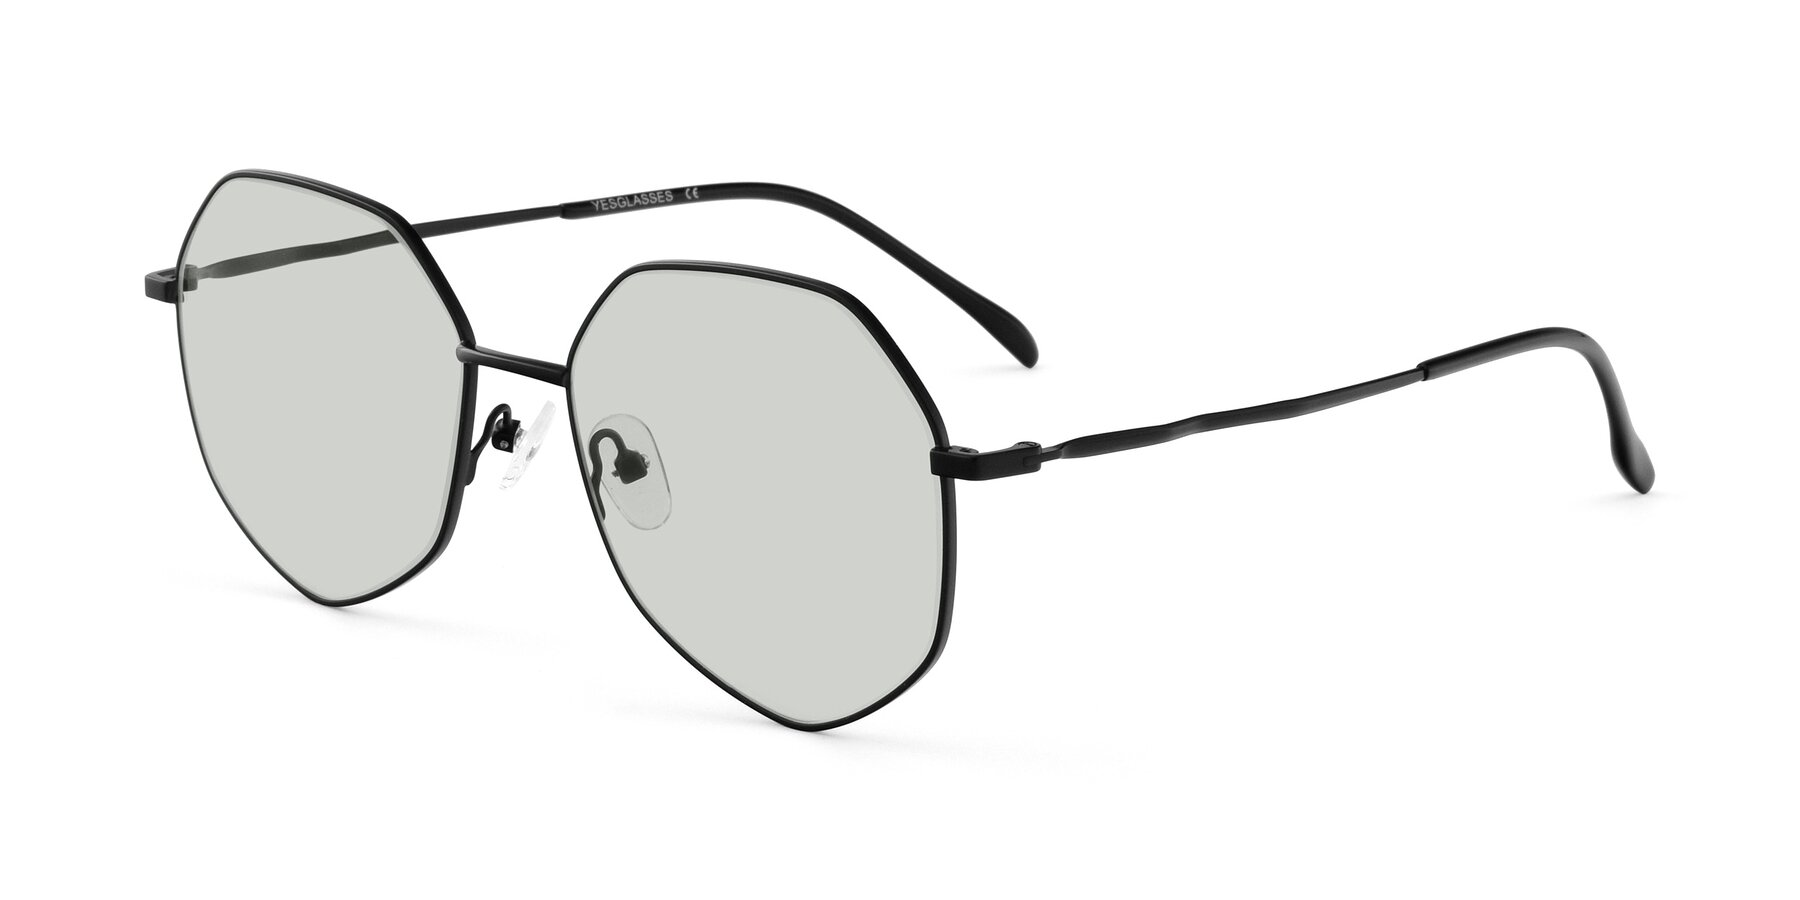 Angle of Sunshine in Black with Light Green Tinted Lenses